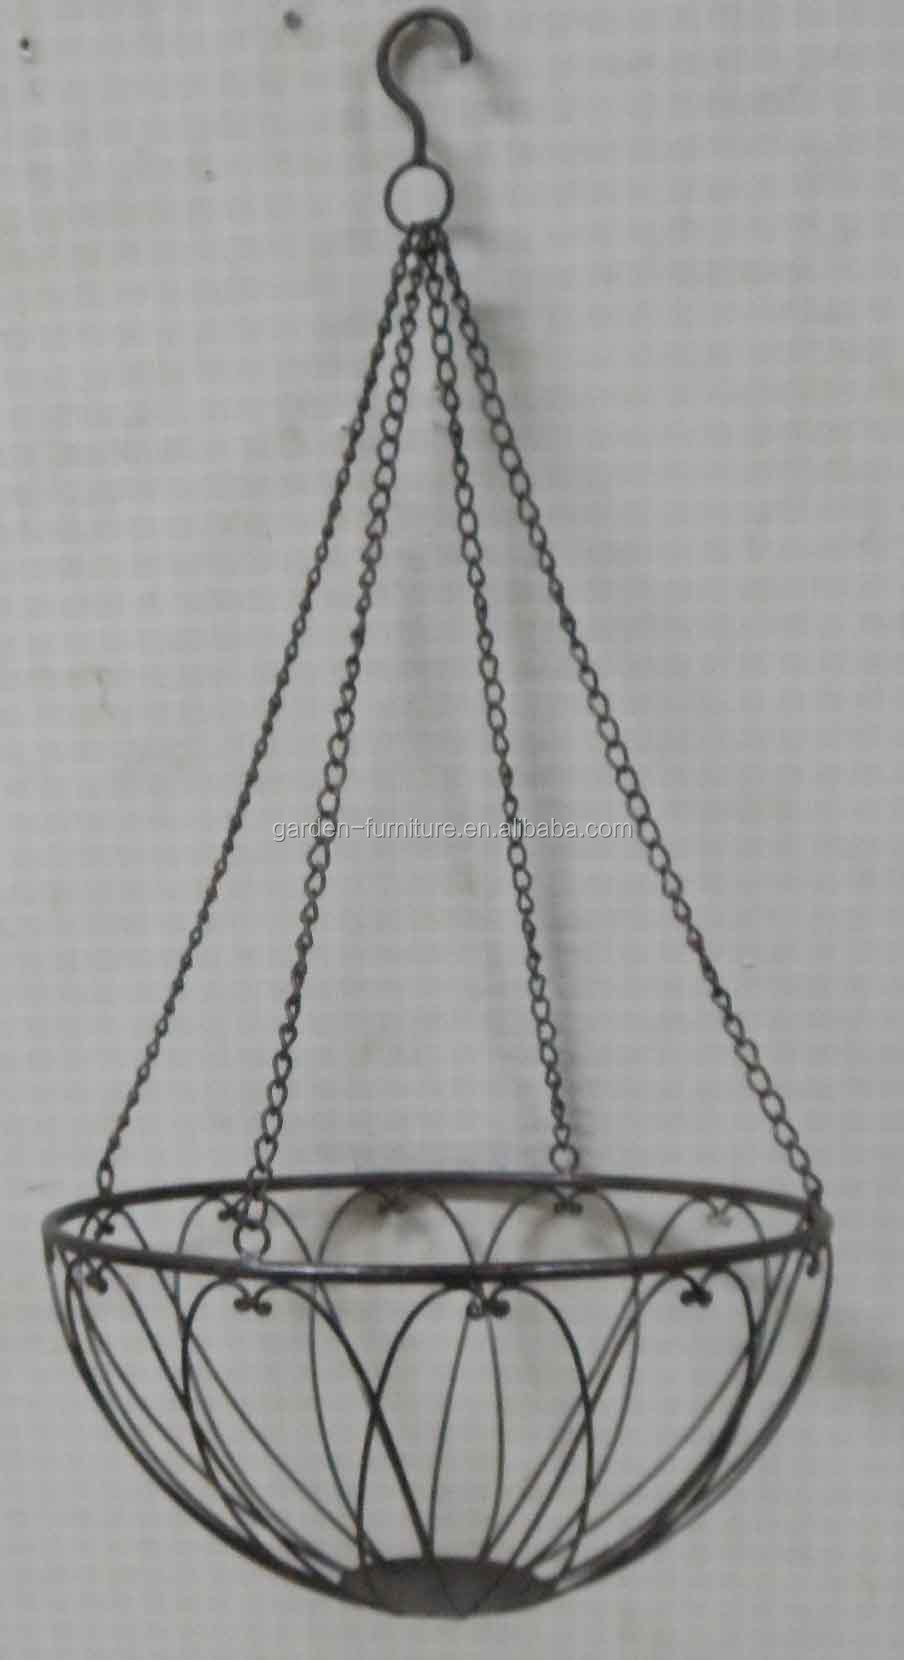 wholesale garden patio park outdoor decor wrought iron handicraft